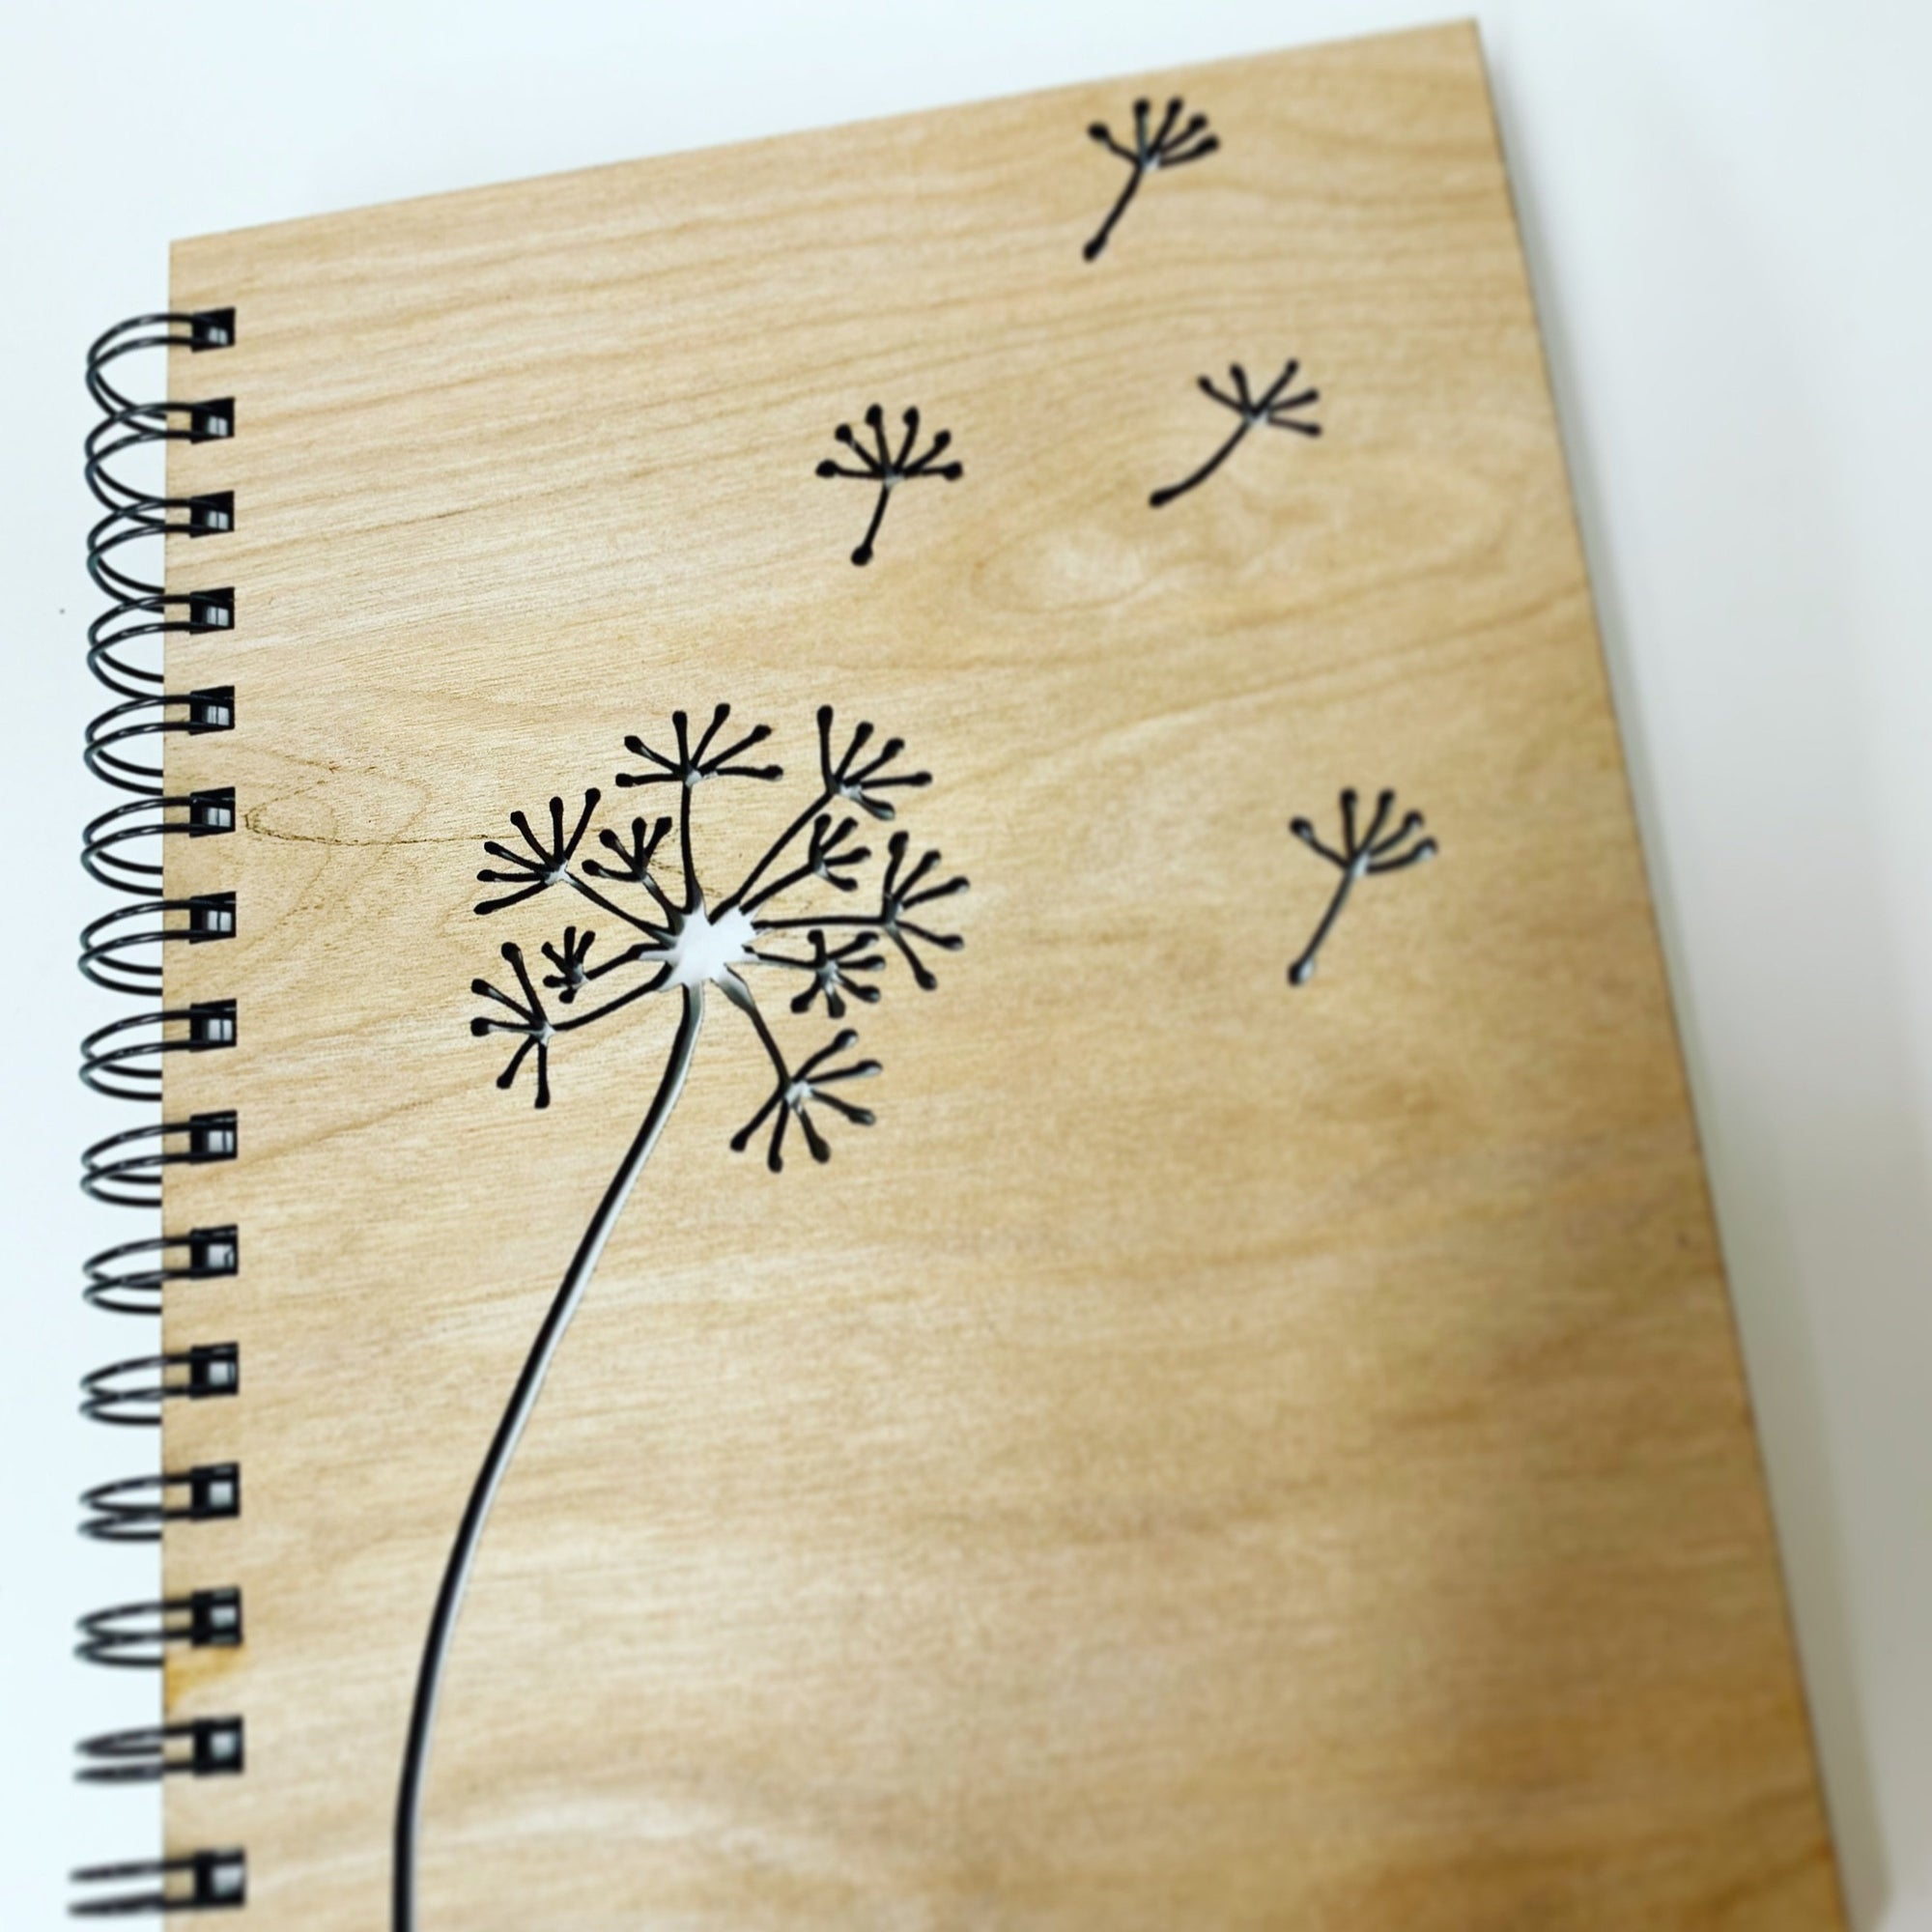 Copy of Wood Notebook - Laser Cut dandelion